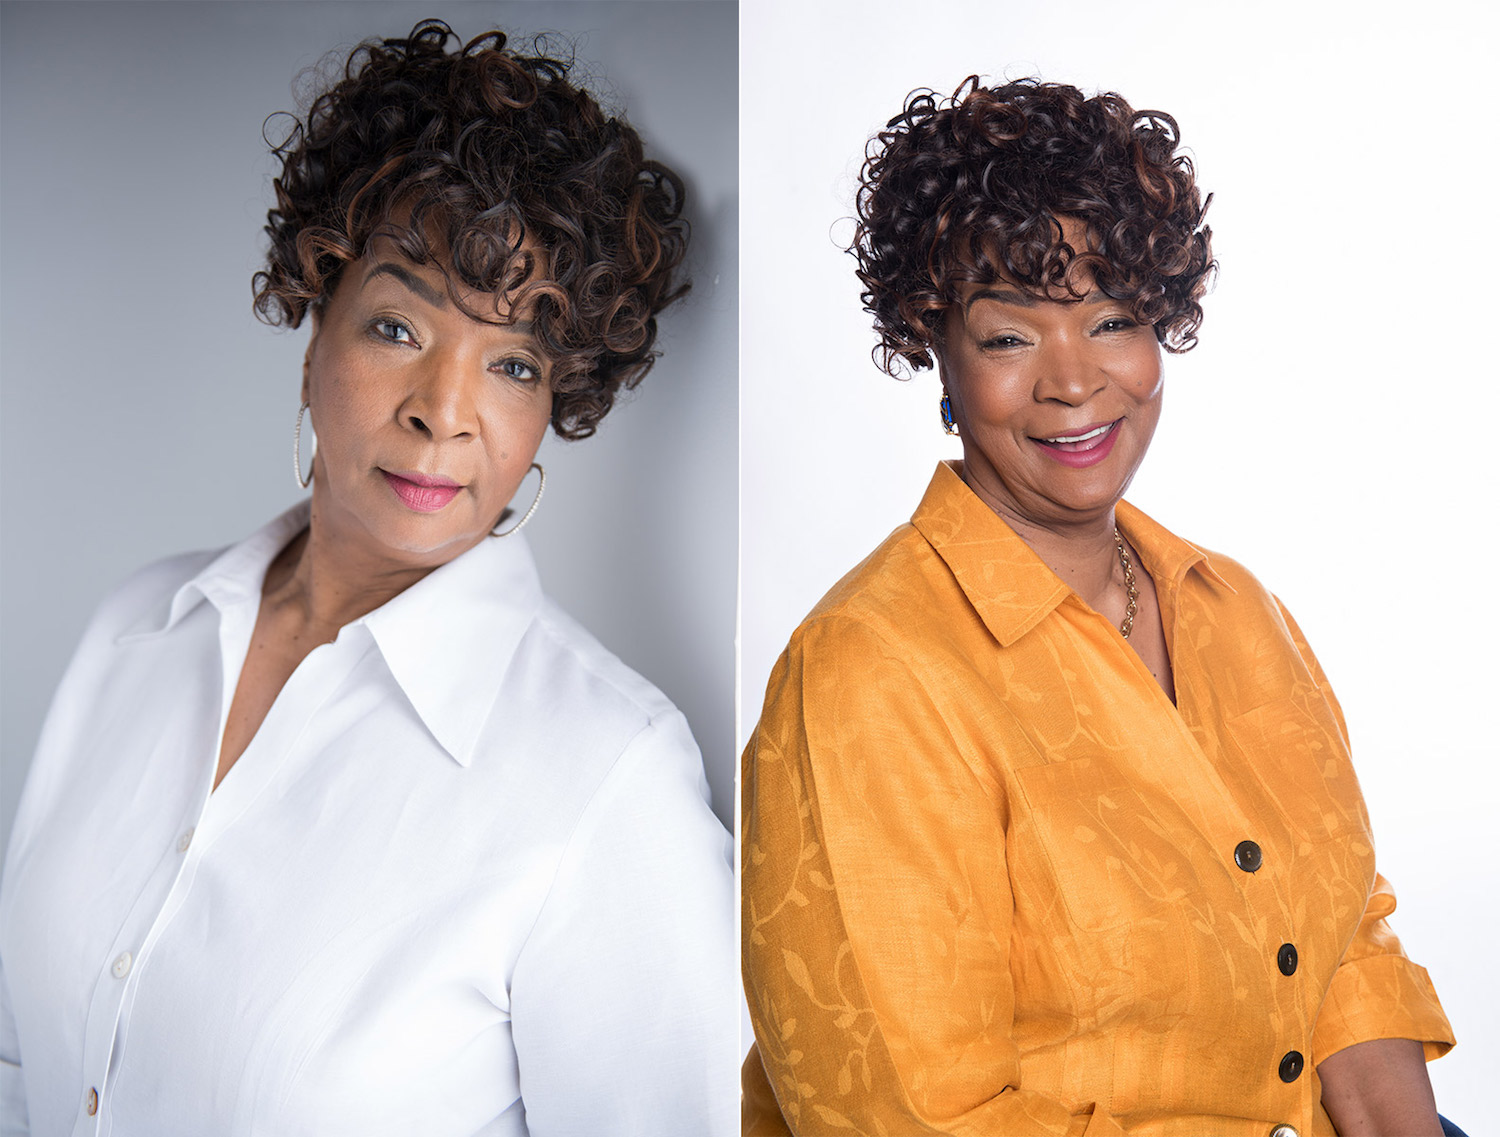 dr-lonise-bias-personal-branding-photo-shoot.jpg